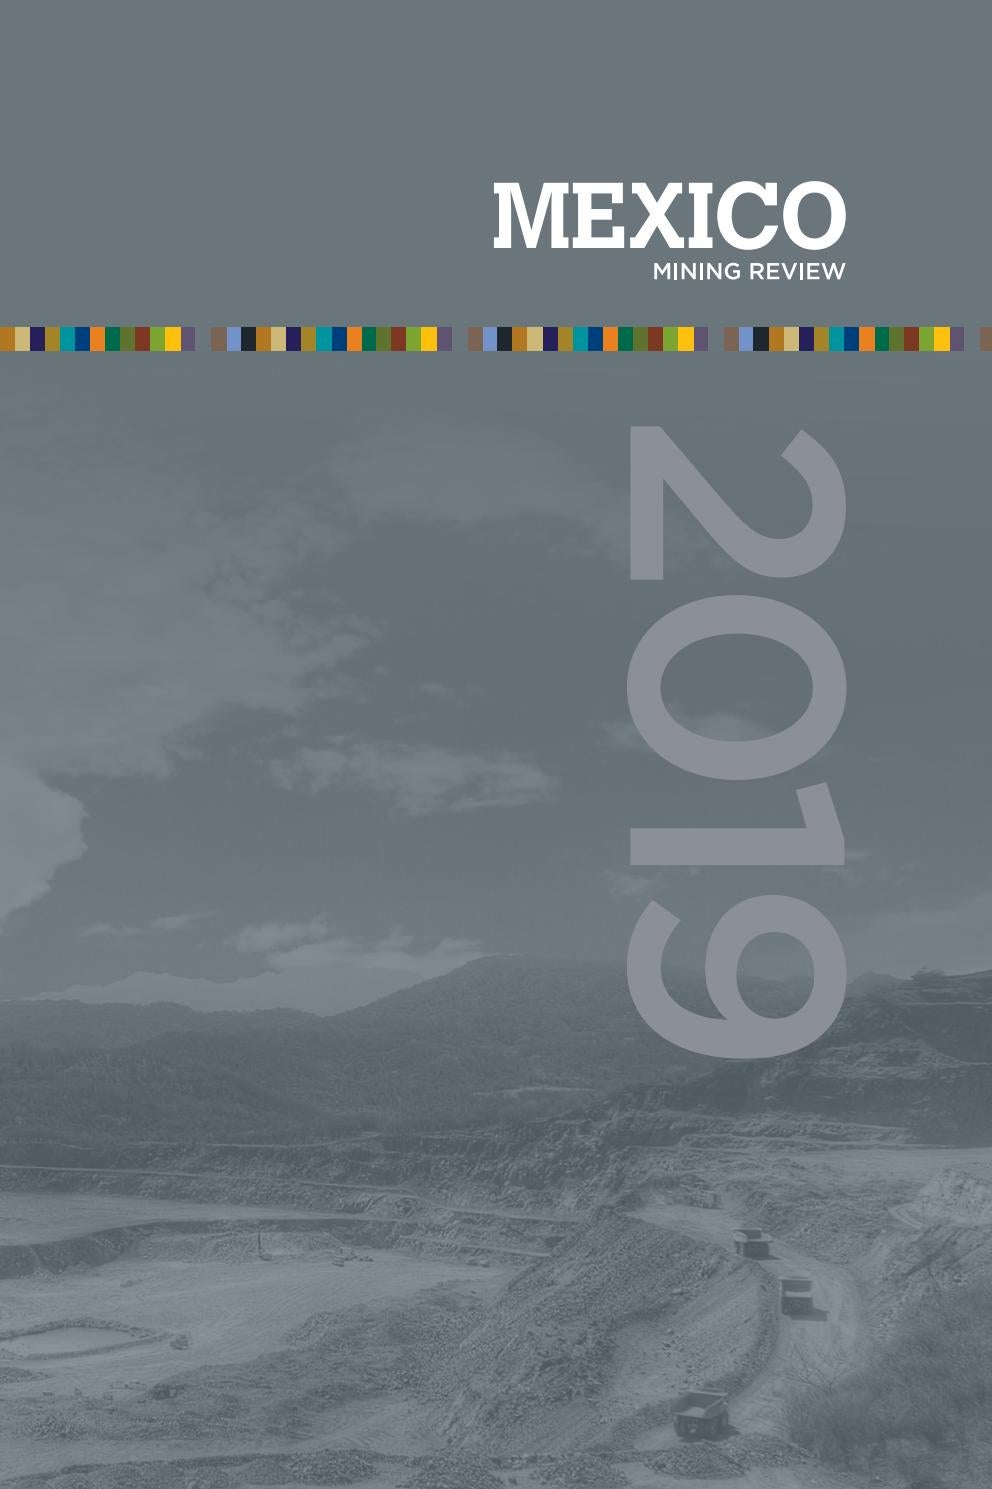 Mexico Mining Review 2019 by Mexico Business Publishing - issuu